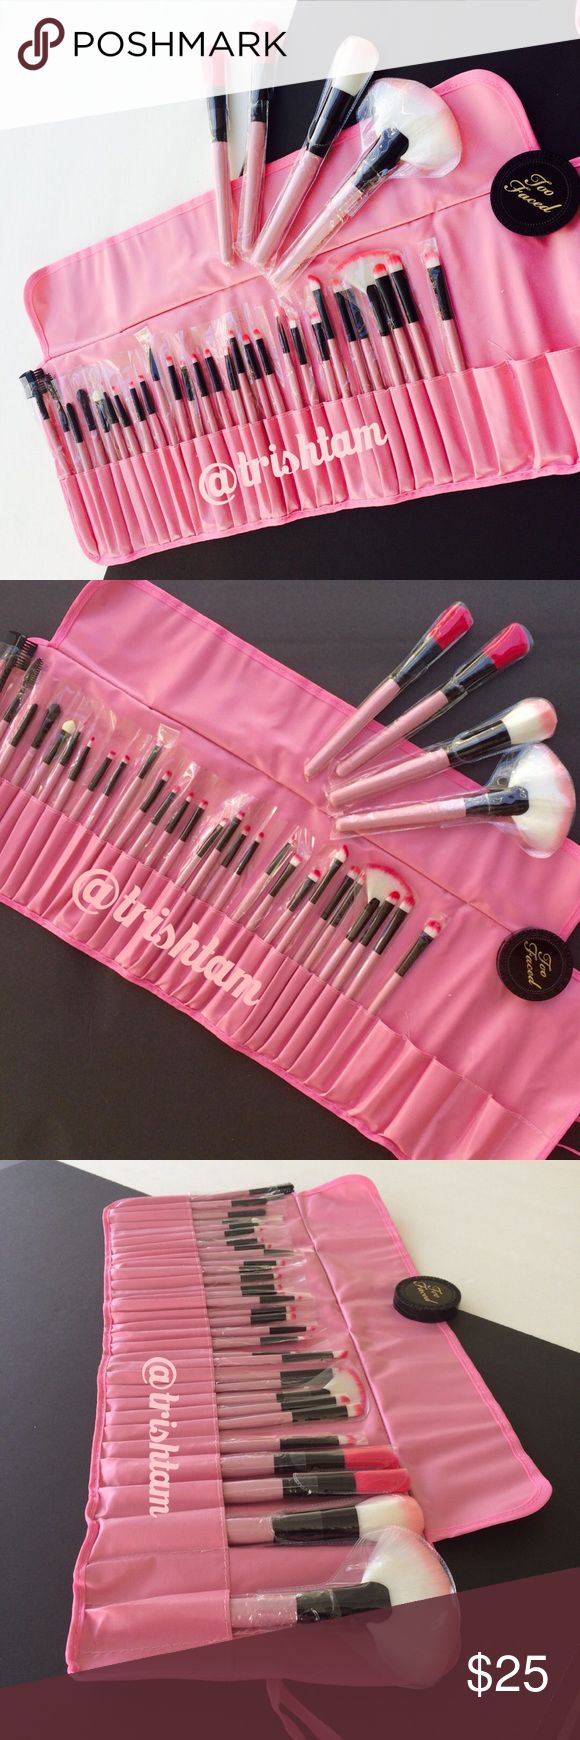 🆕🚨Final Price🚨32pcs pink makeup brushes w case Never used 32 pcs makeup brushes with case. Brushes are soft and the quality is good. Includes eyeshadow, eyeliner, lip liner, eyebrow, blush, foundation brushes and other brushes. Two faced bronzer is only for photographic purposes and is not included with purchase‼️Price is firm unless bundled.❌trades and ❌offers. 👉🏼Please place case in an open window or fan and clean brushes with baby oil if there is fresh faux leather odor👈🏼 Unbranded…